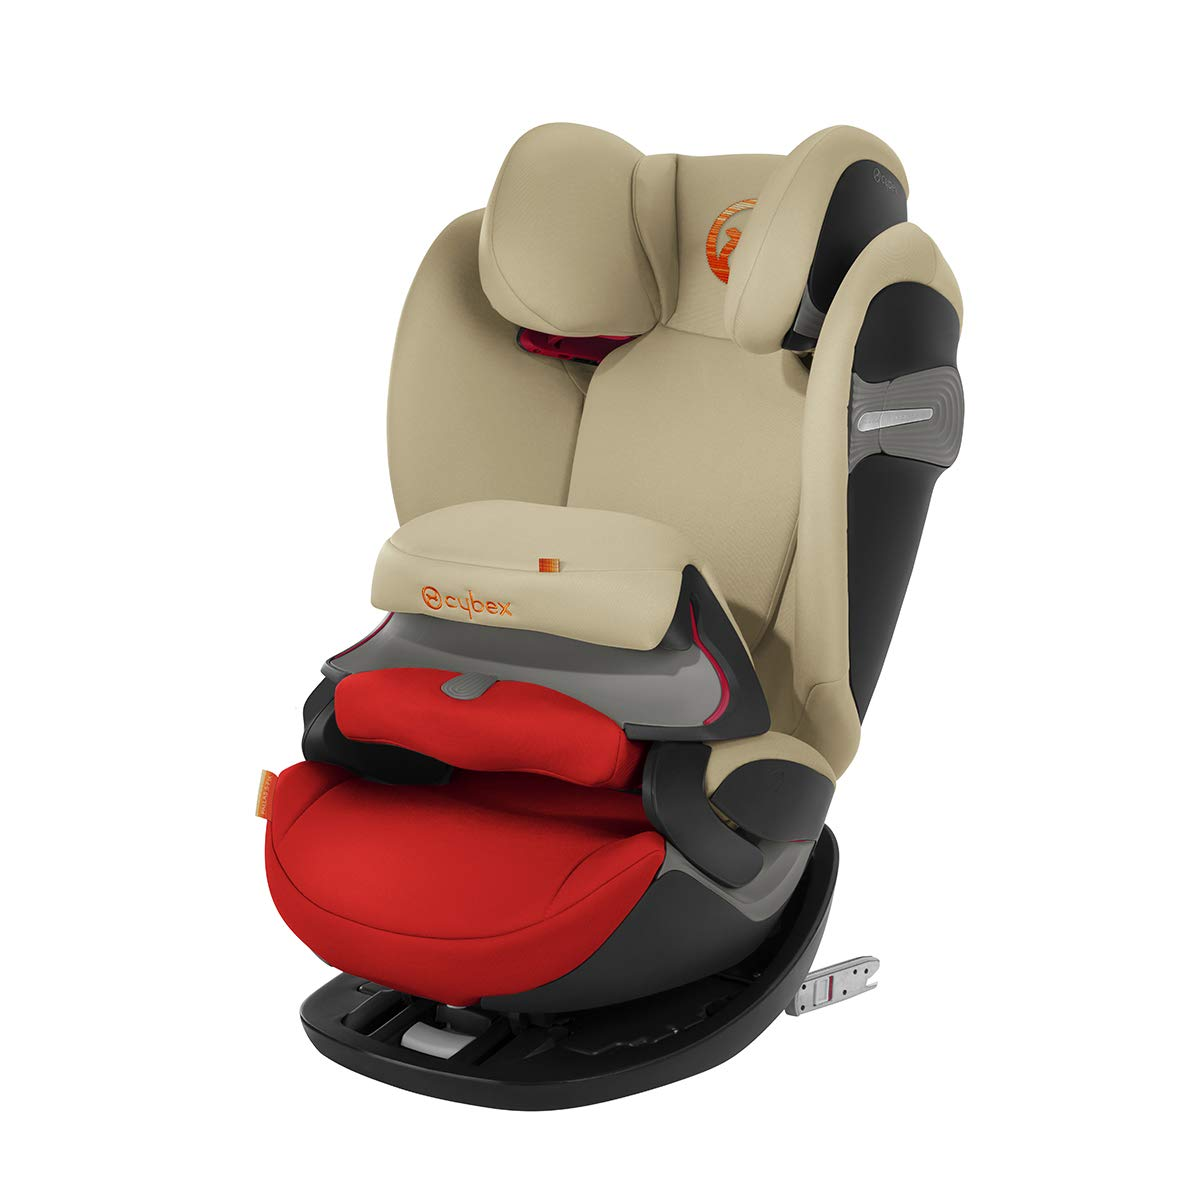 Cybex Gold Pallas S-Fix 2-in-1 Child's Car Seat, for Cars With and Without ISOFIX, Group 1/2/3 (9-36 kg), From Approx. 9 Months to Approx. 12 Years, Autumn Gold